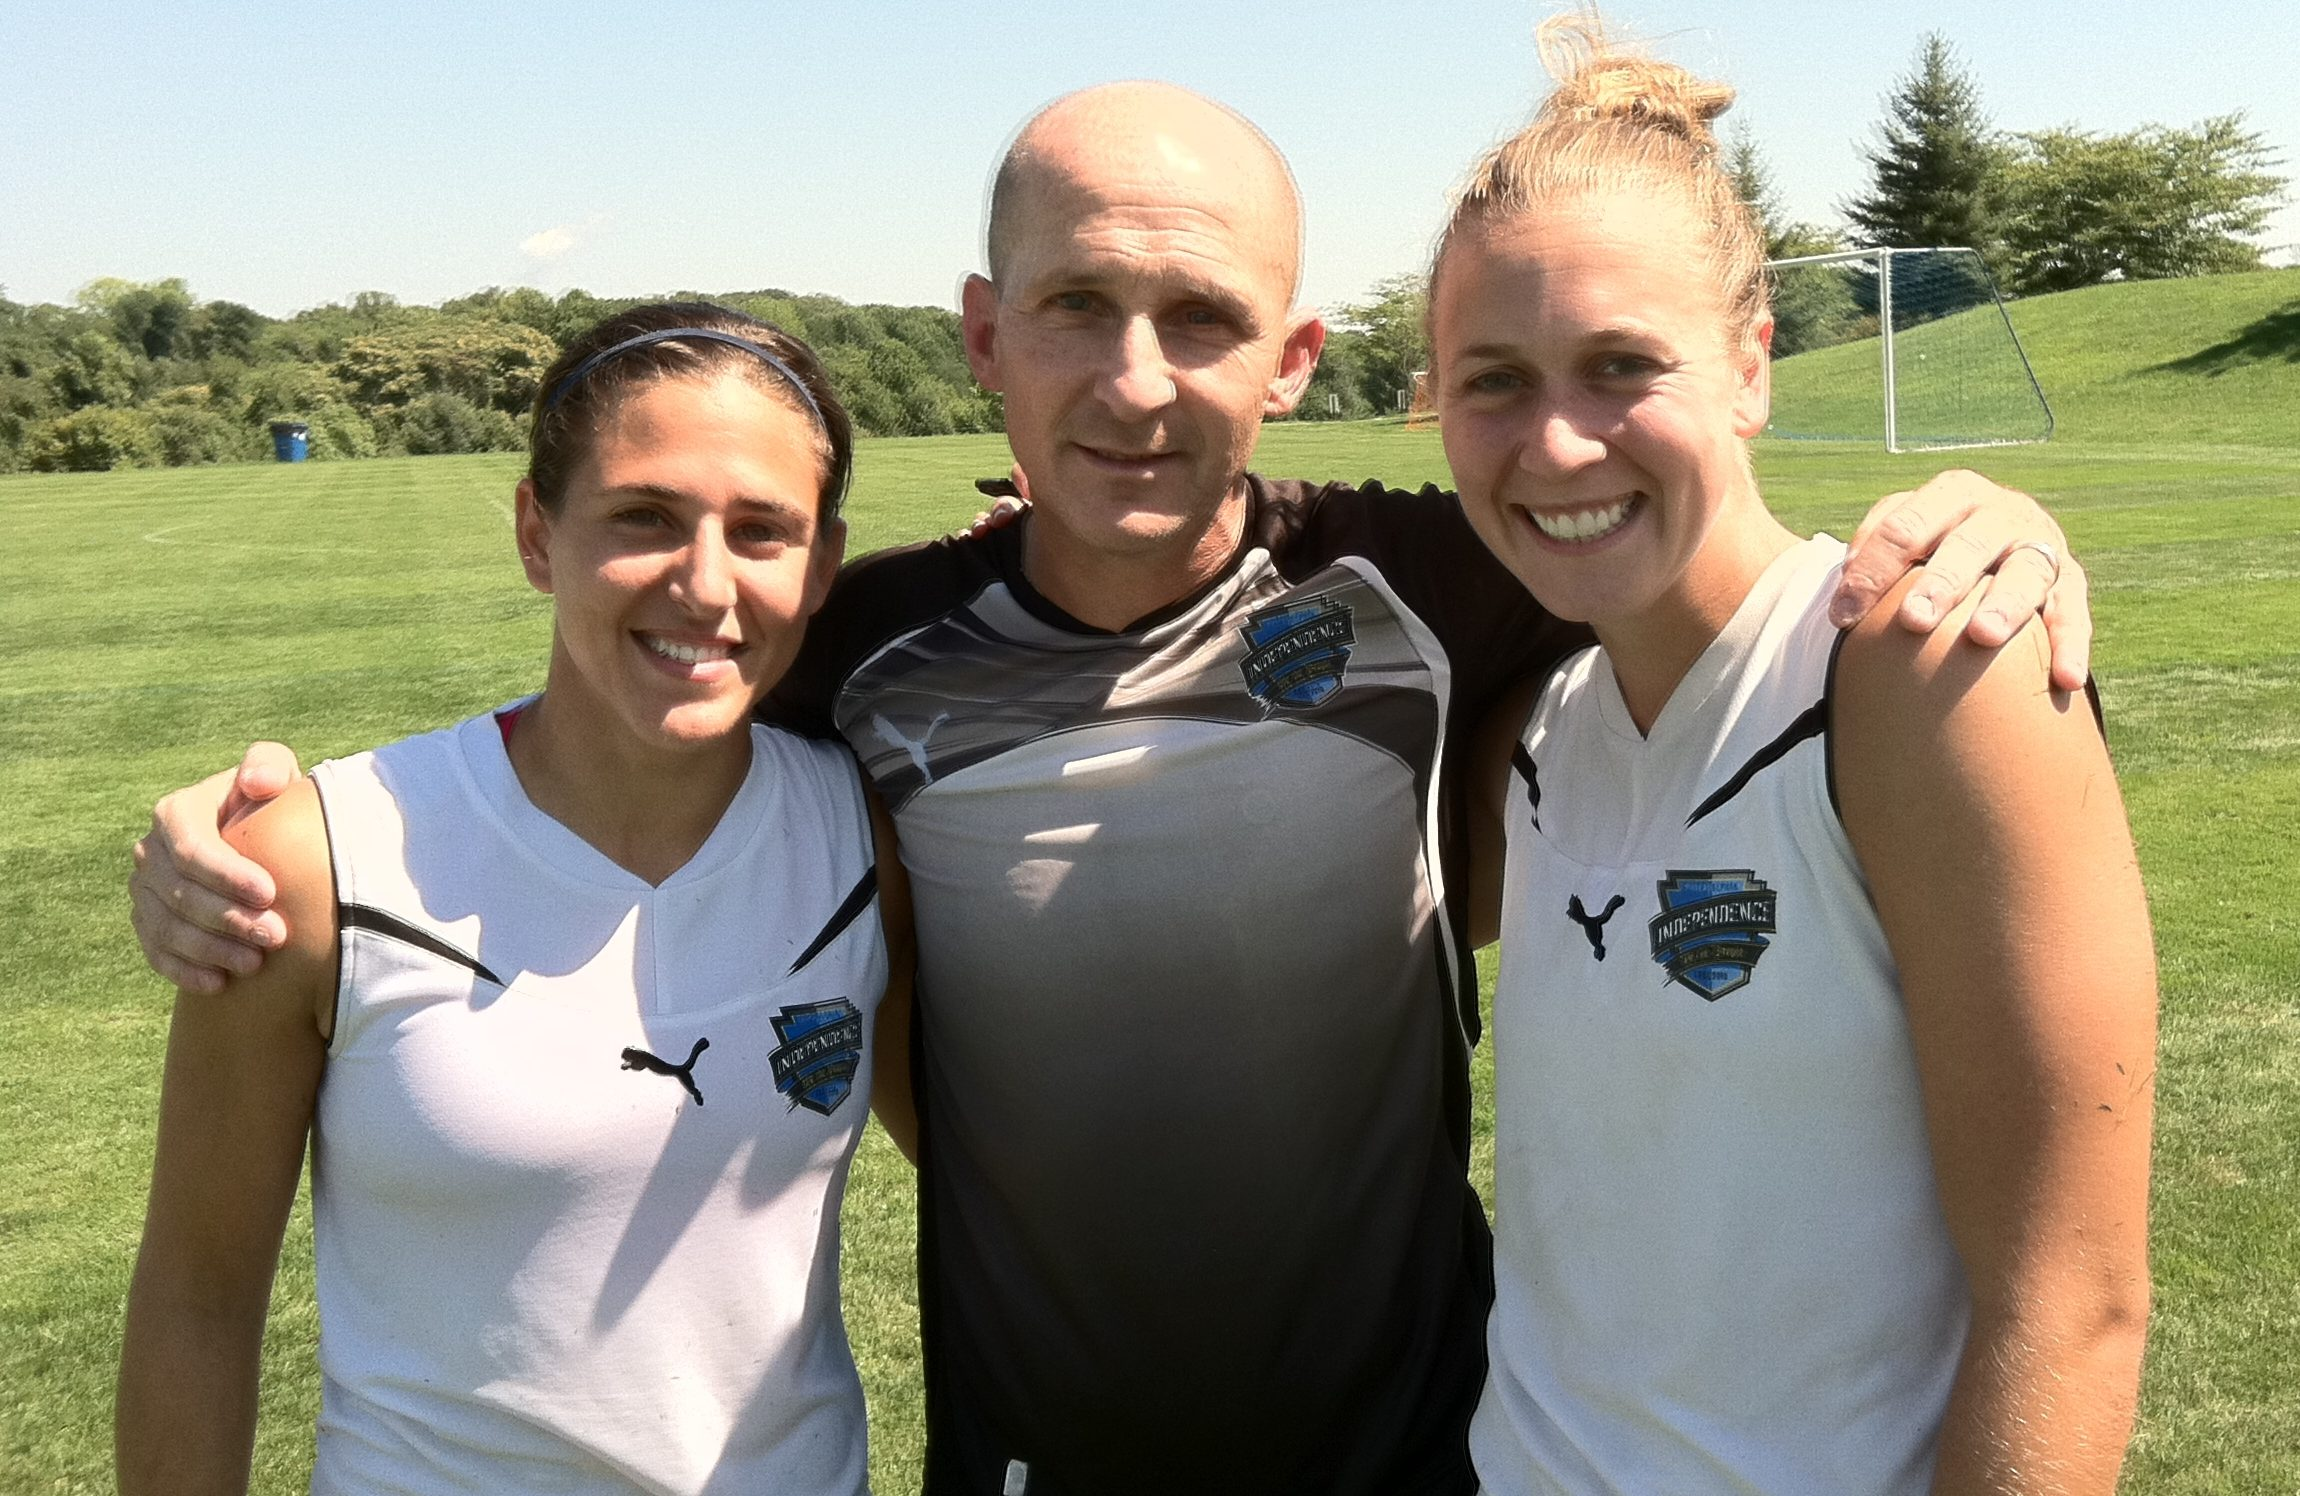 Paul Riley during his days as Philadelphia Independence head coach, with players Verónica Boquete (left) and Nikki Krzysik (right).